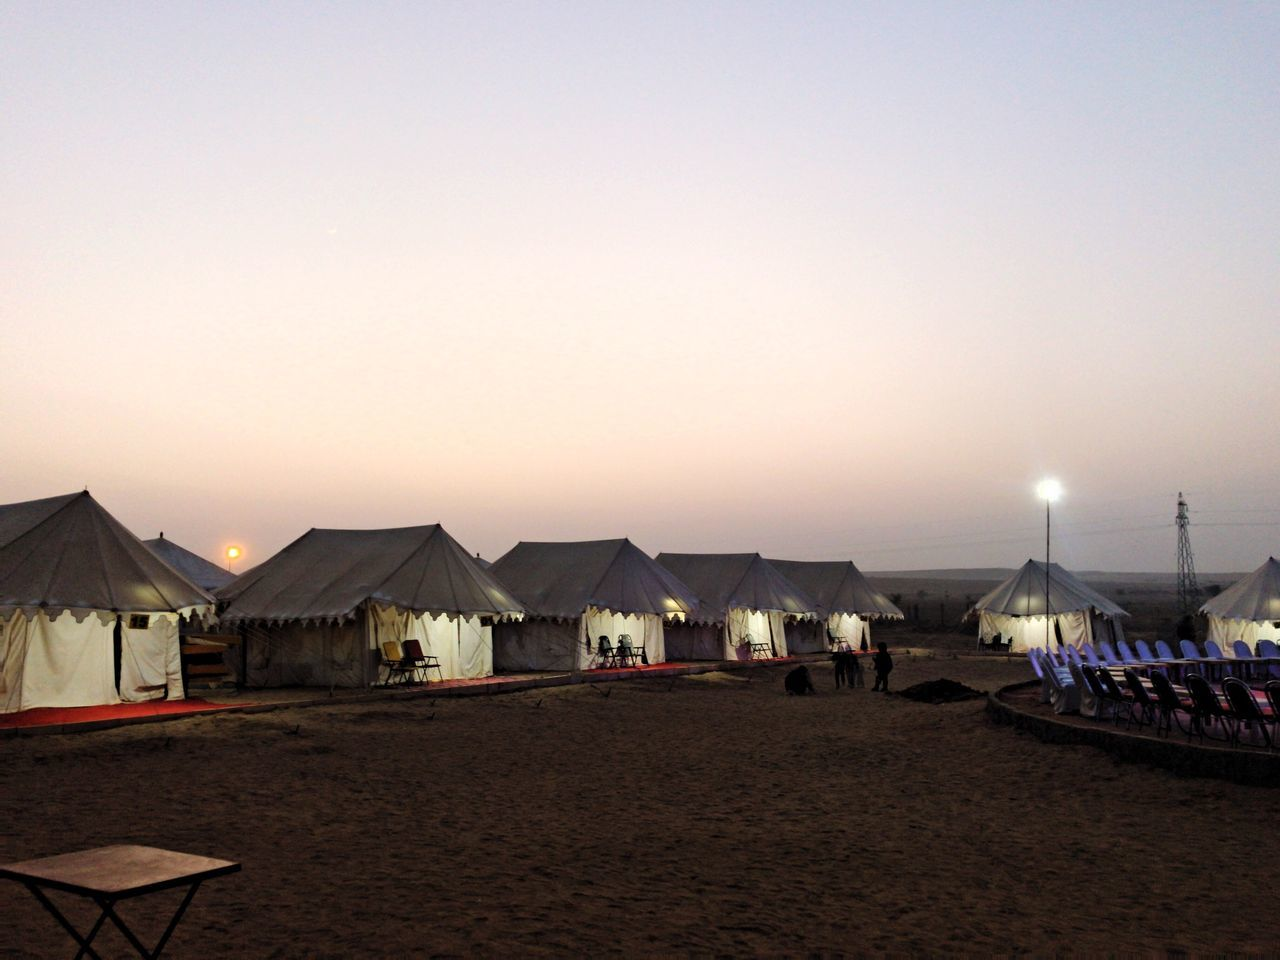 beach, sand, sunset, nature, outdoors, sea, clear sky, tranquility, vacations, tent, beauty in nature, sky, scenics, water, no people, day